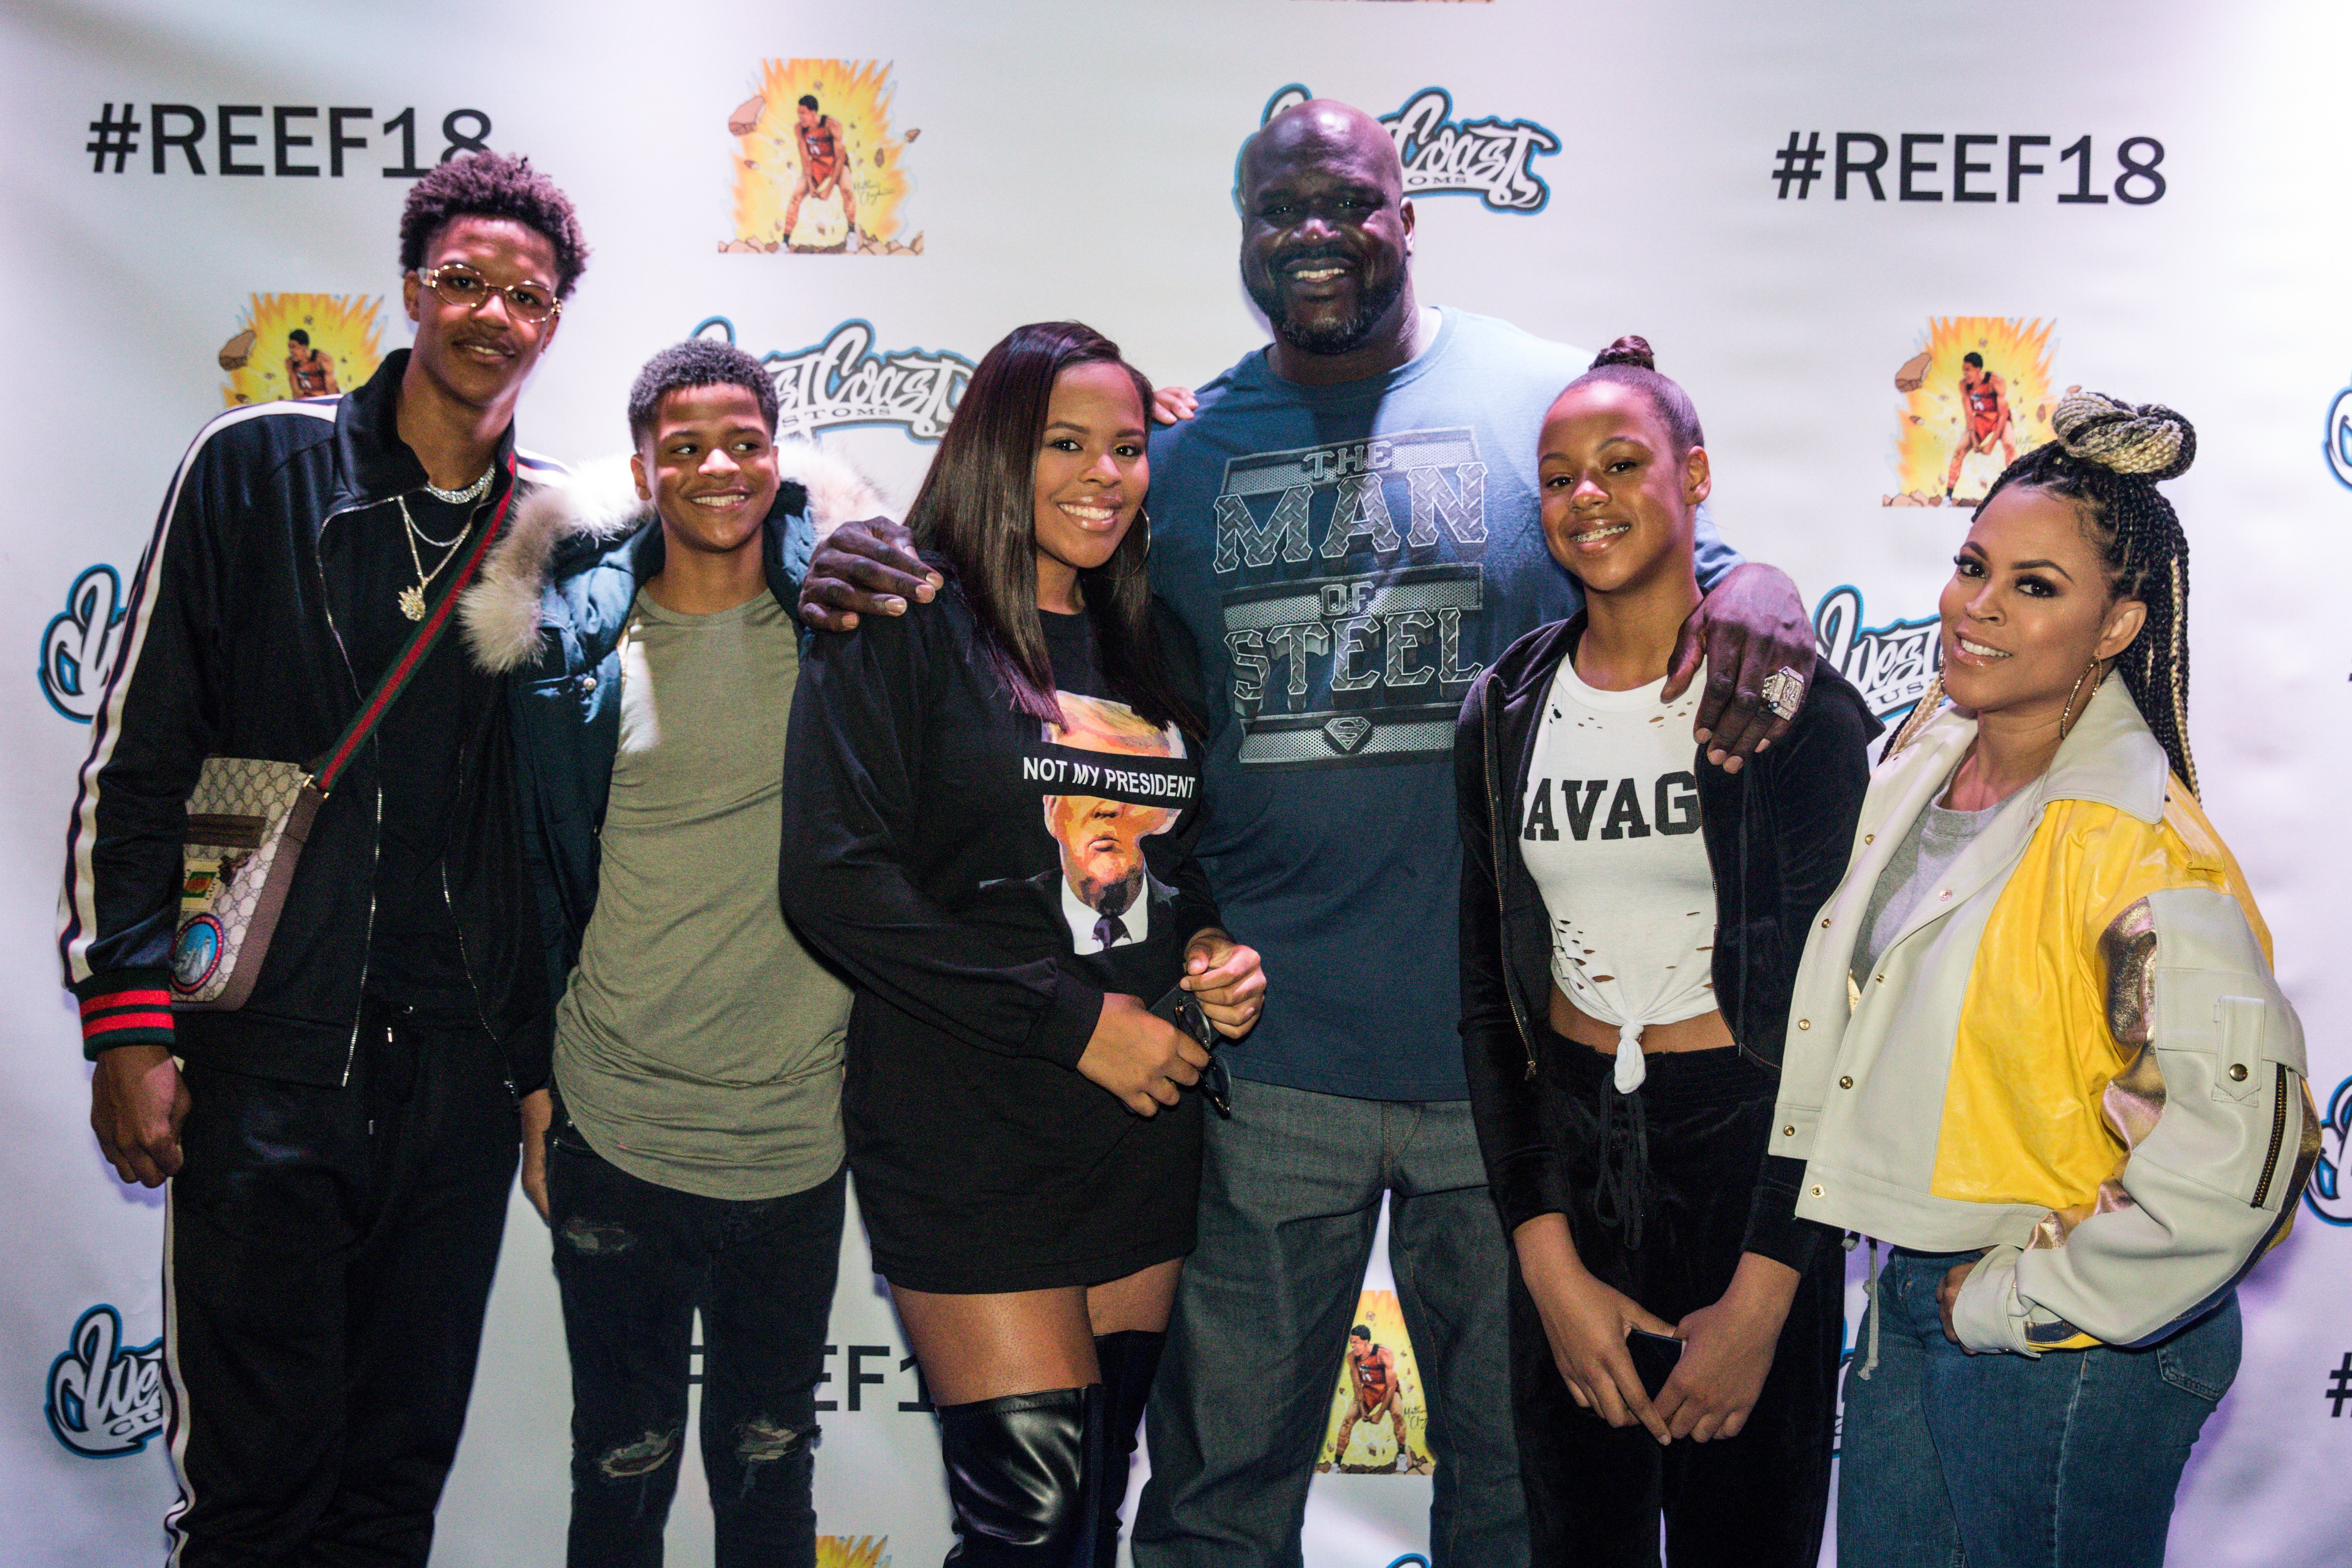 Shareef O'Neal, Shaquille O'Neal, Shaunie O'Neal and family at Shareef's 18th birthday party at West Coast Customs on January 13, 2018 | Photo: GettyImages